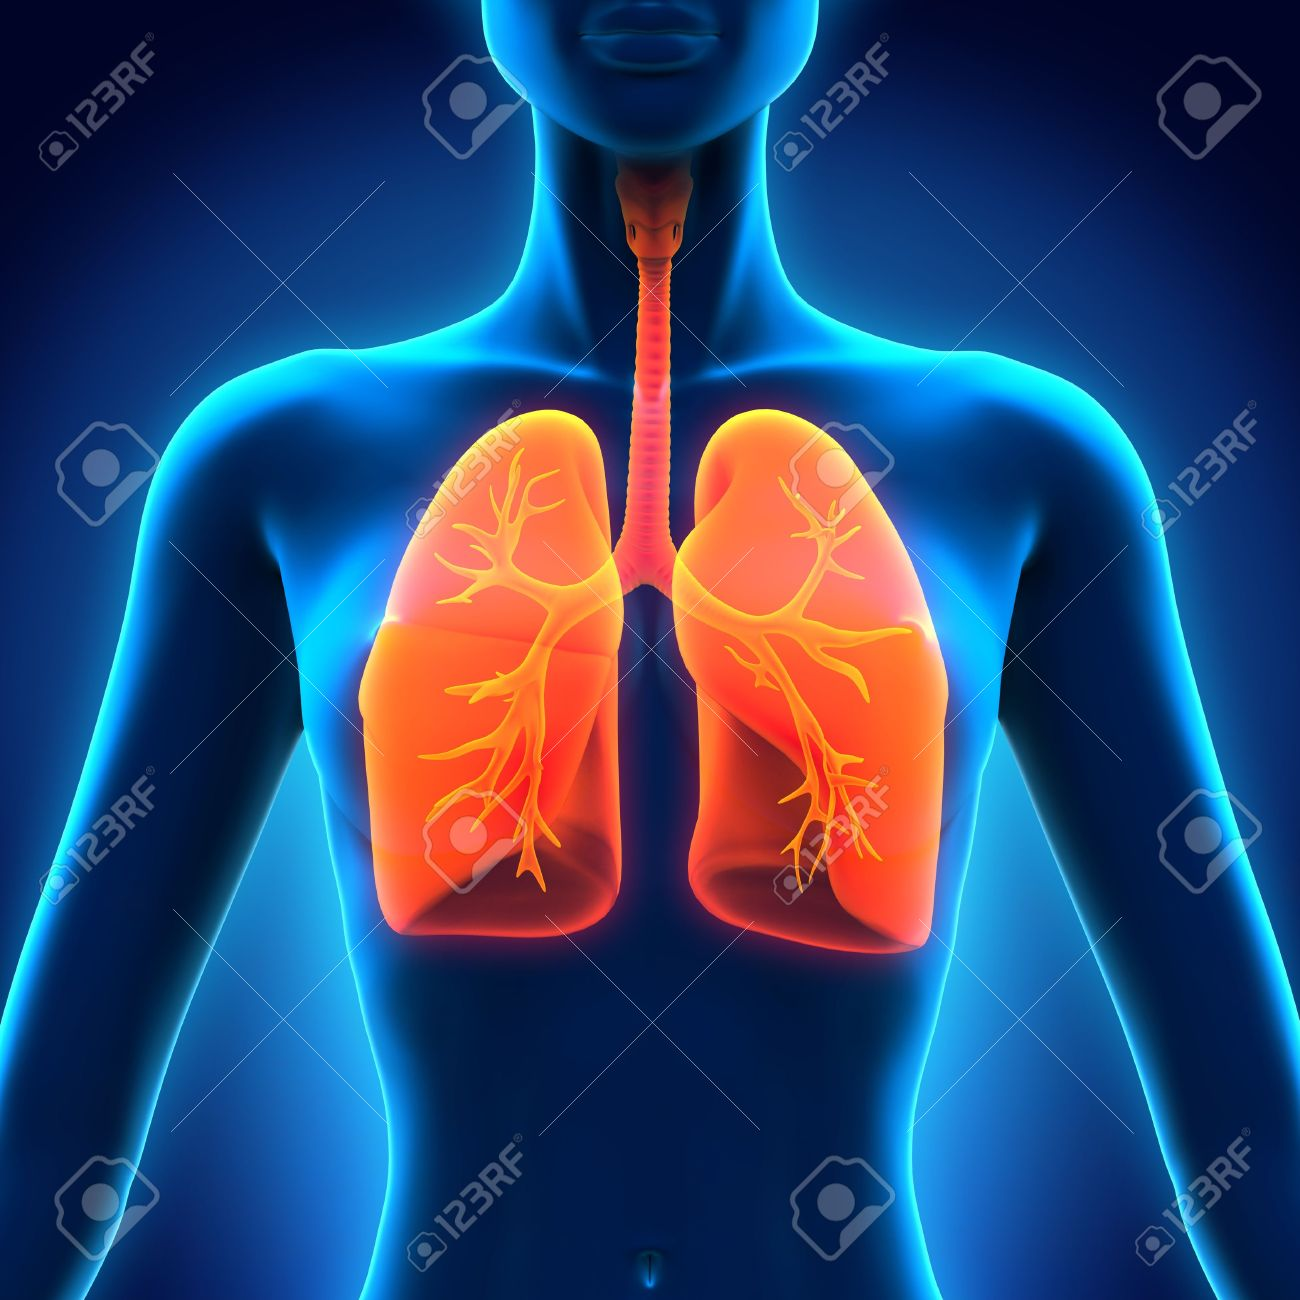 Female Anatomy Of Human Respiratory System Stock Photo, Picture And ...